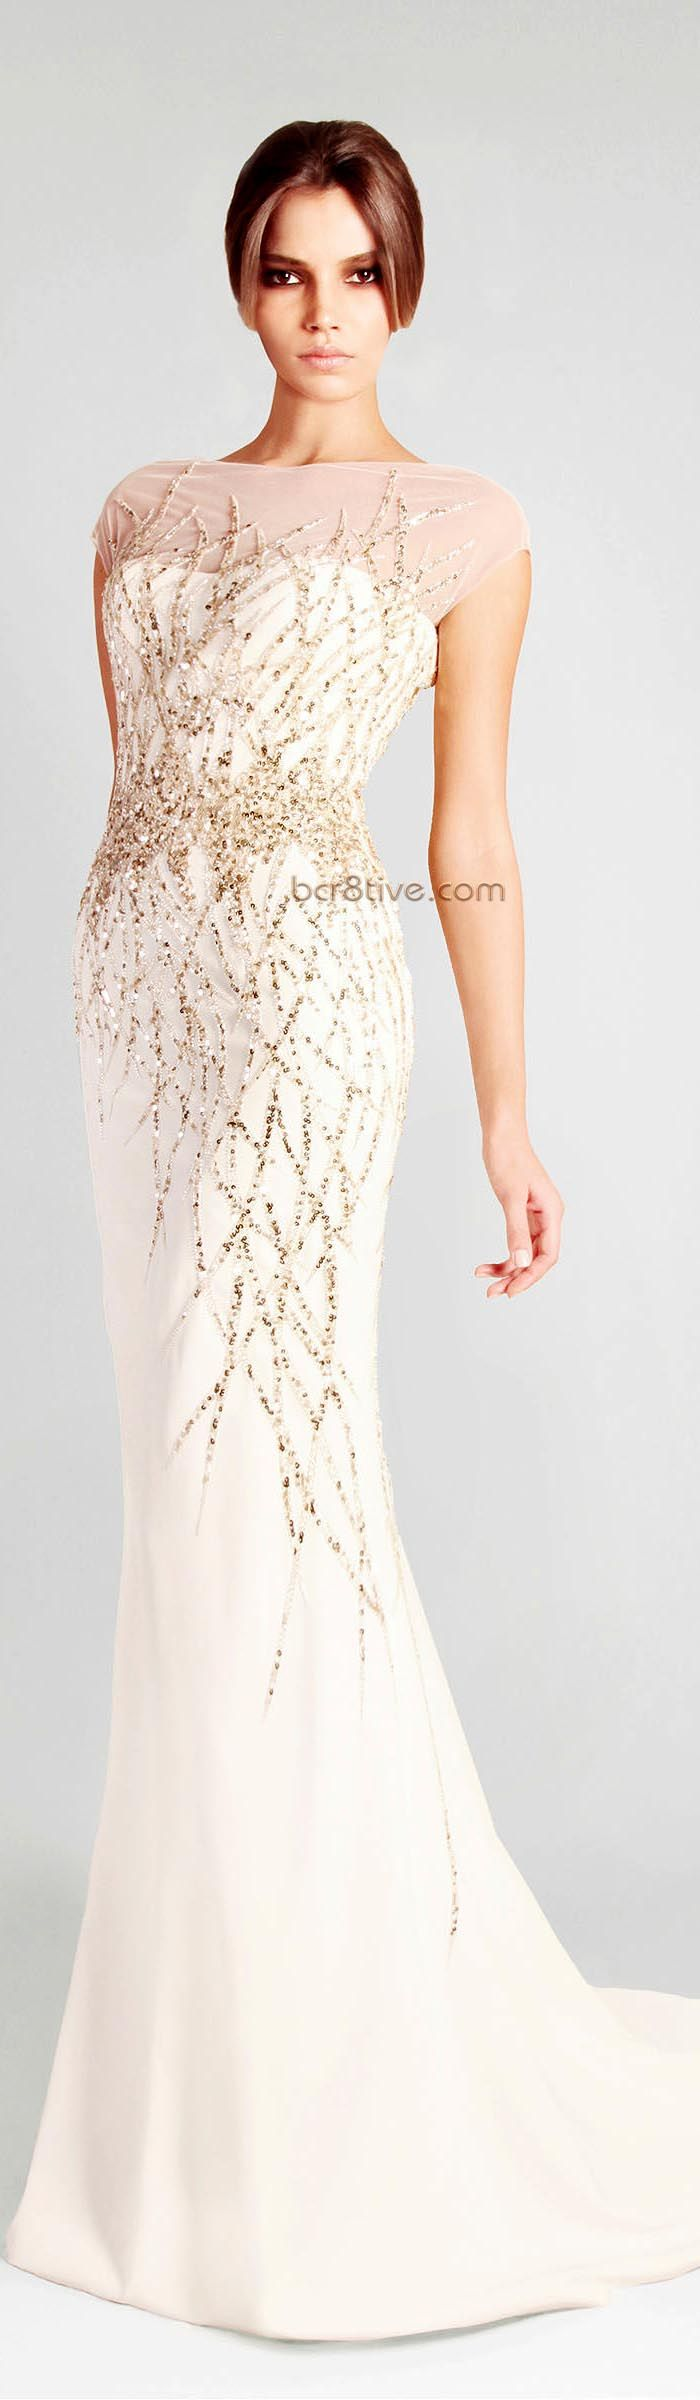 Dresses to wear to summer wedding  Georges Hobeika Spring Summer  Ready to Wear Signature